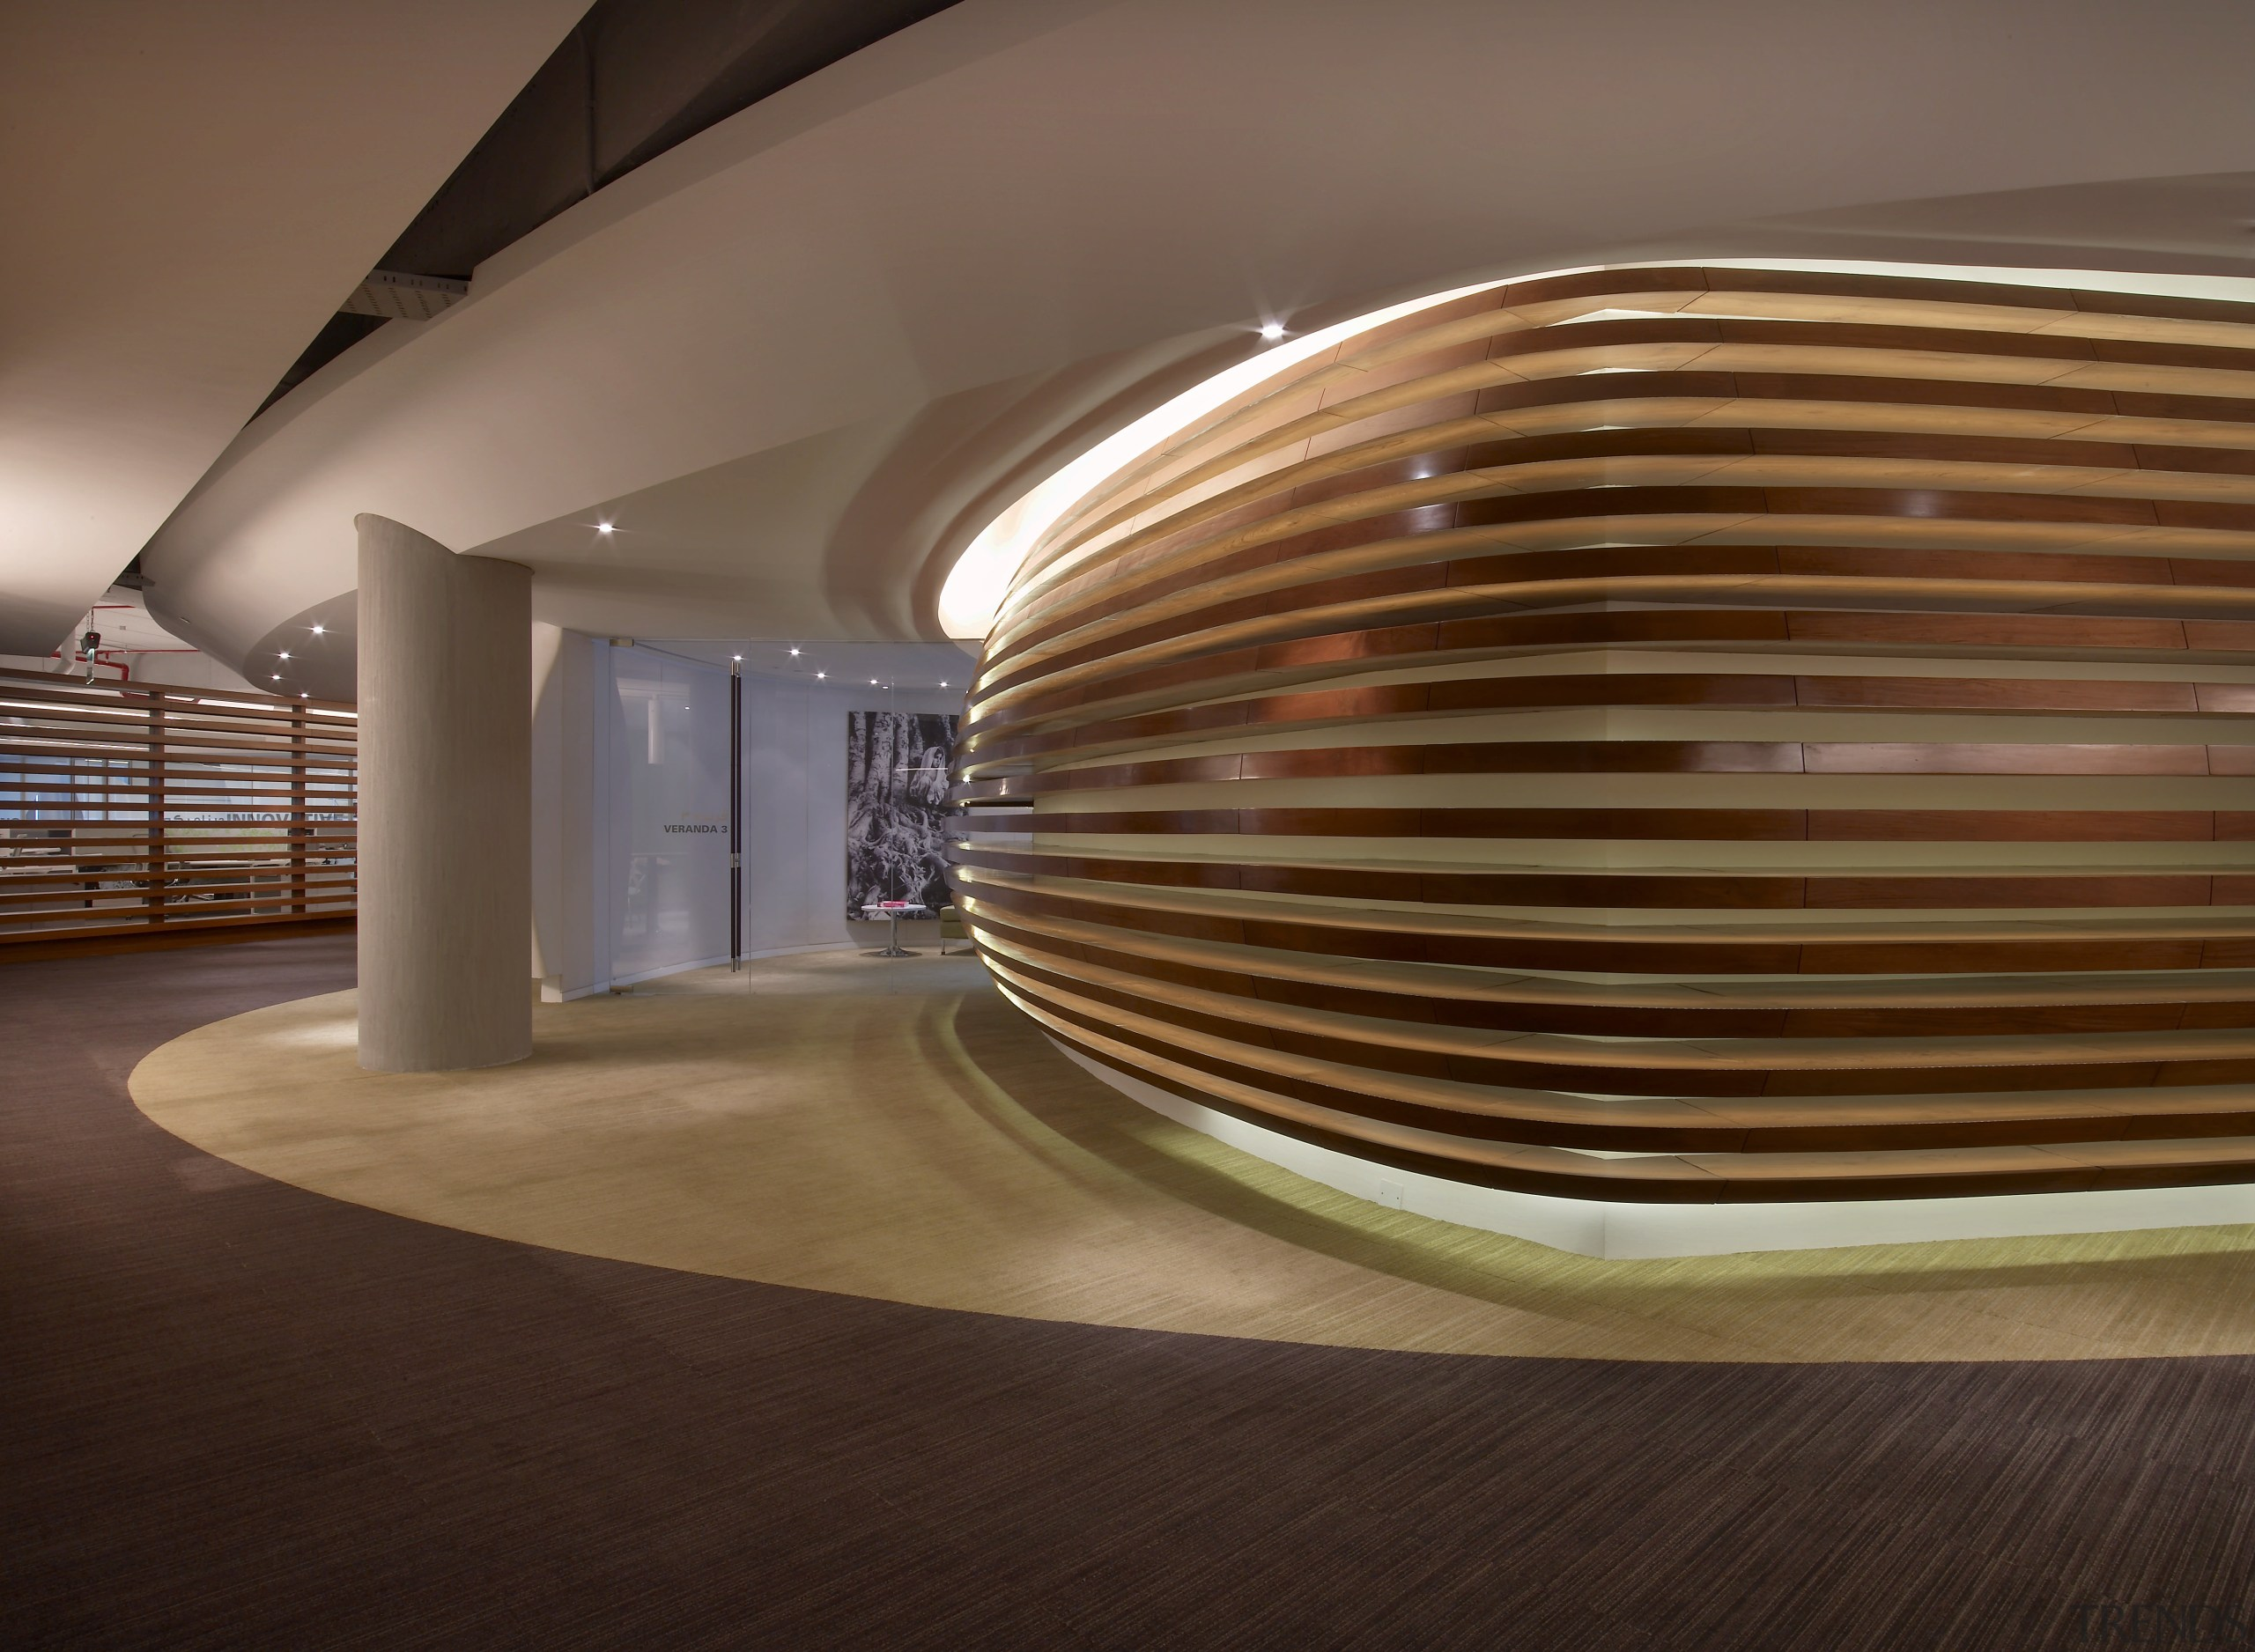 Interior with wooden curved floor feature. - Interior architecture, ceiling, daylighting, floor, flooring, hardwood, interior design, lighting, lobby, performing arts center, product design, wood, brown